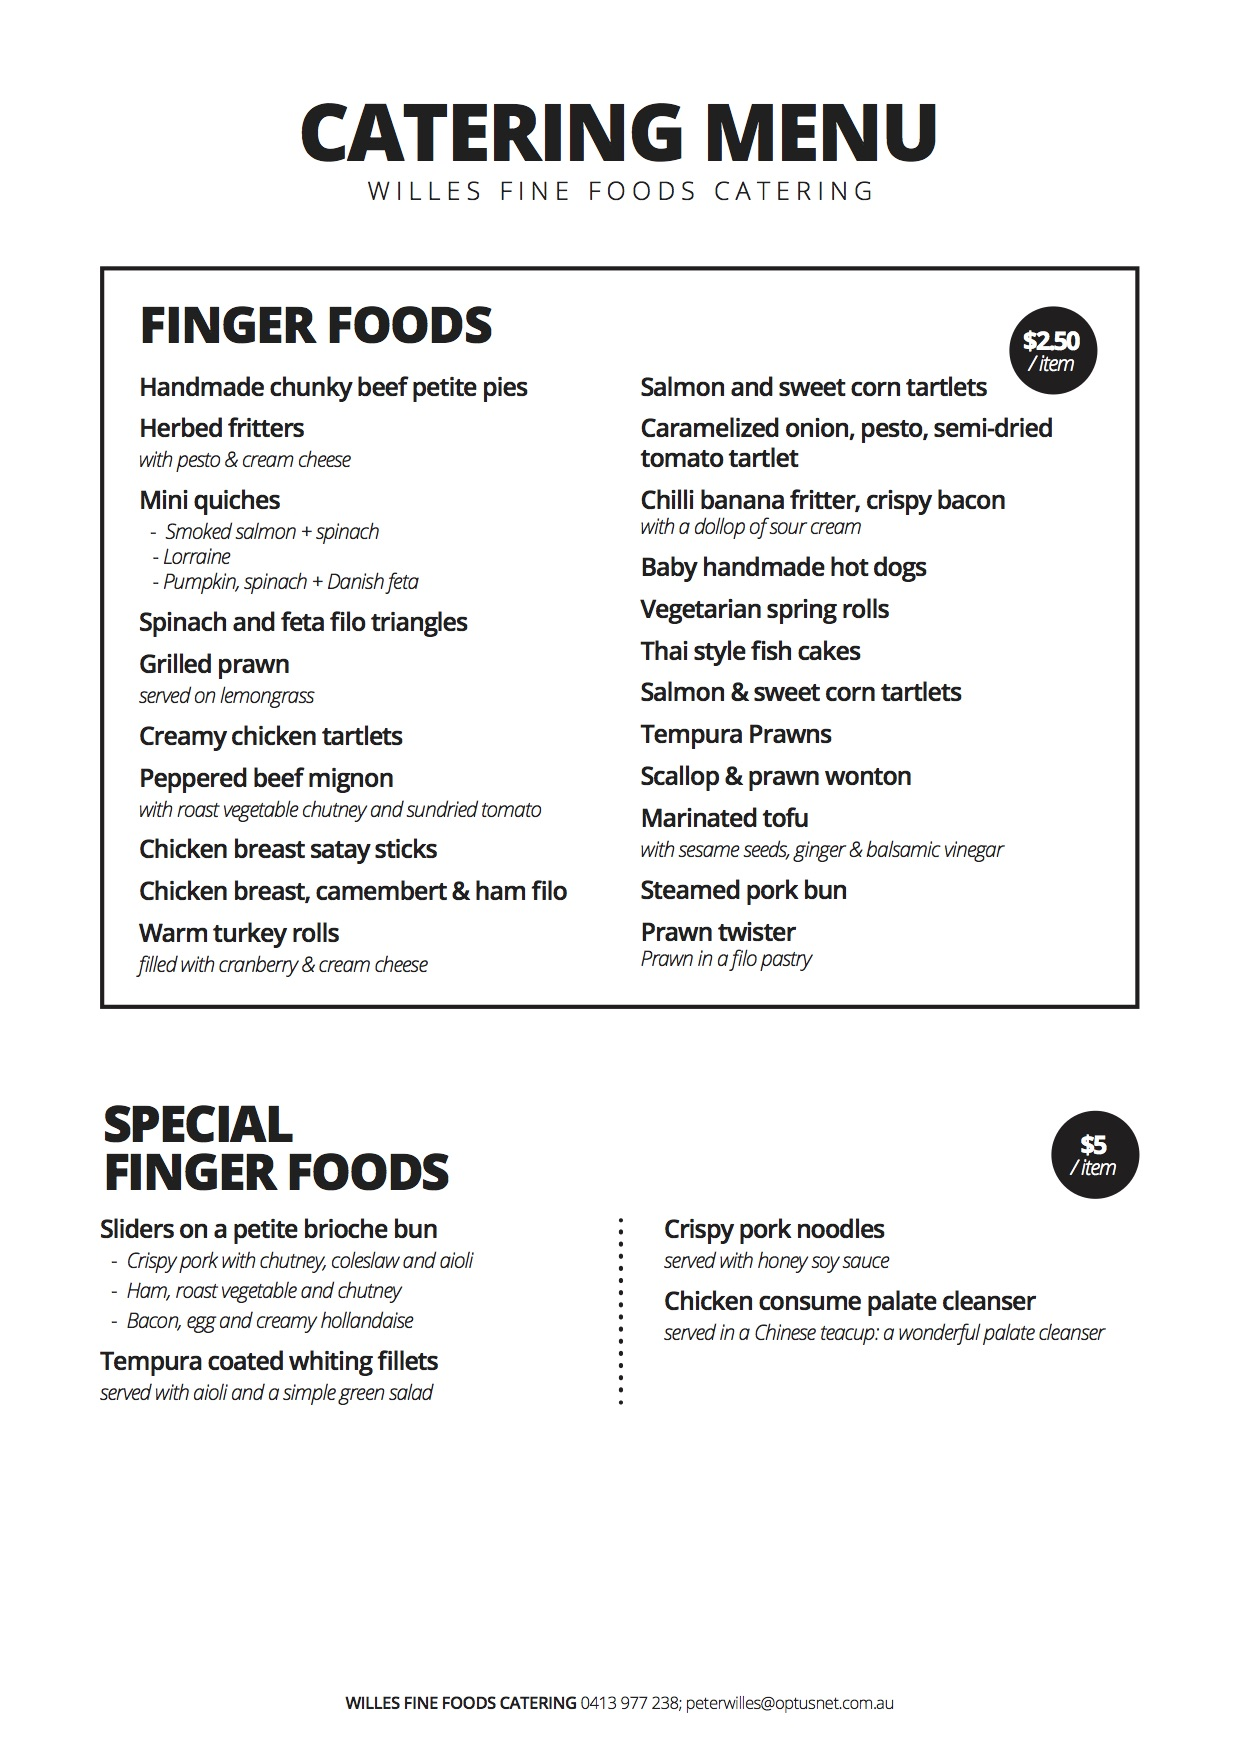 Finger Foods Catering